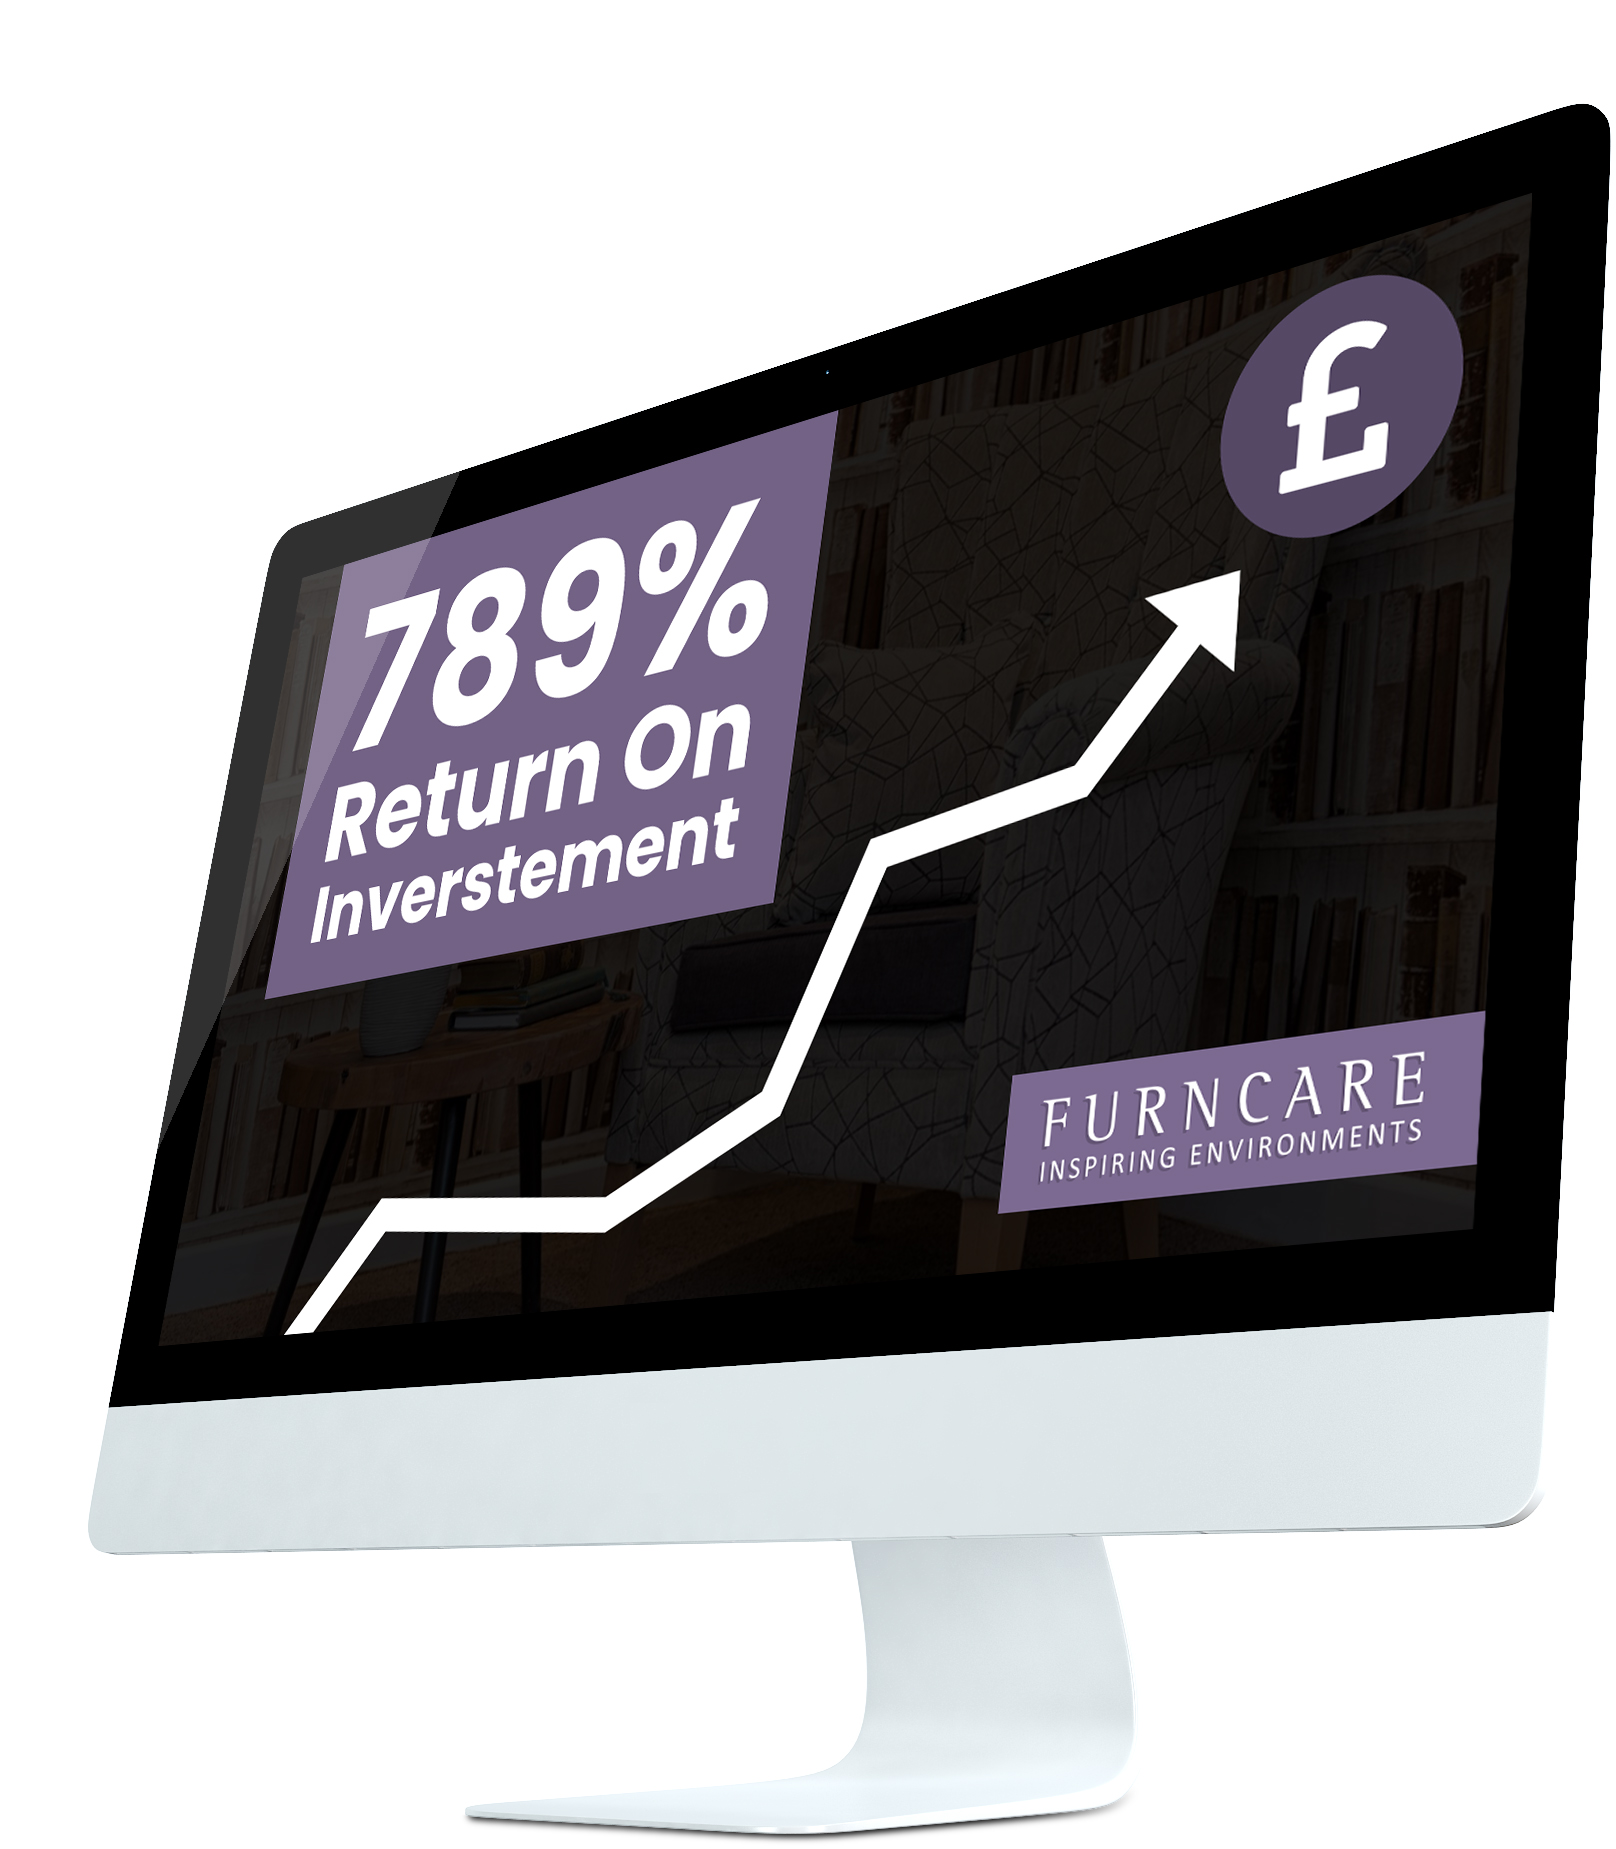 789% return on investment